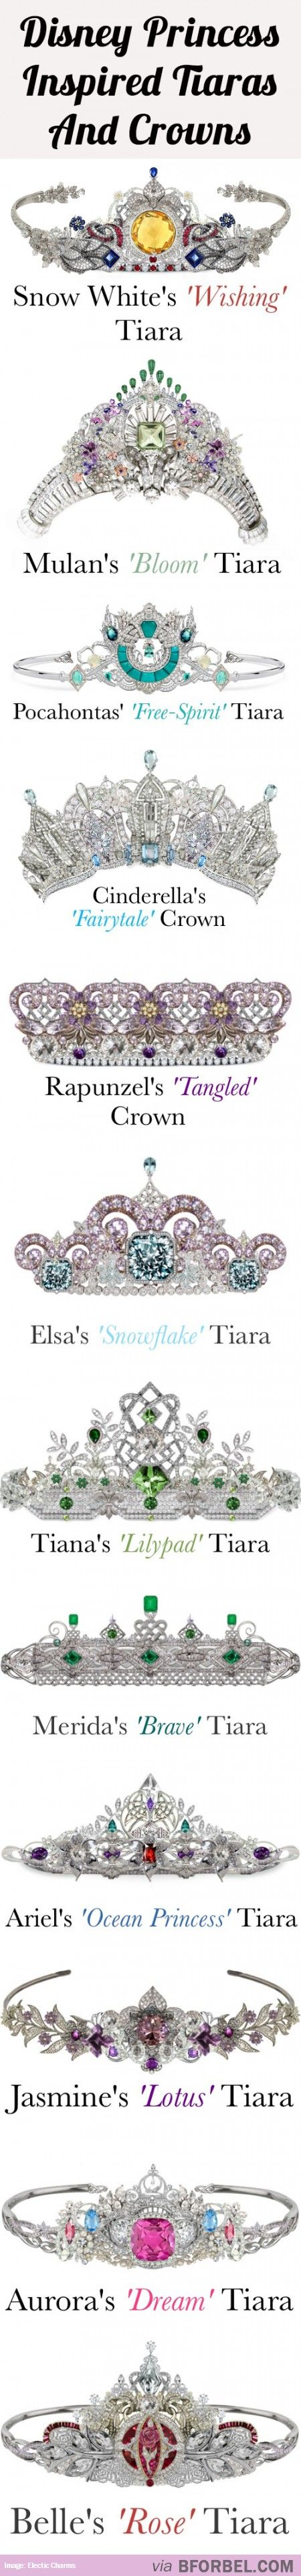 12 Disney Princess Tiaras And Crowns…All Set With Beautiful Diamonds, Gems Precious Stones. -ShazB